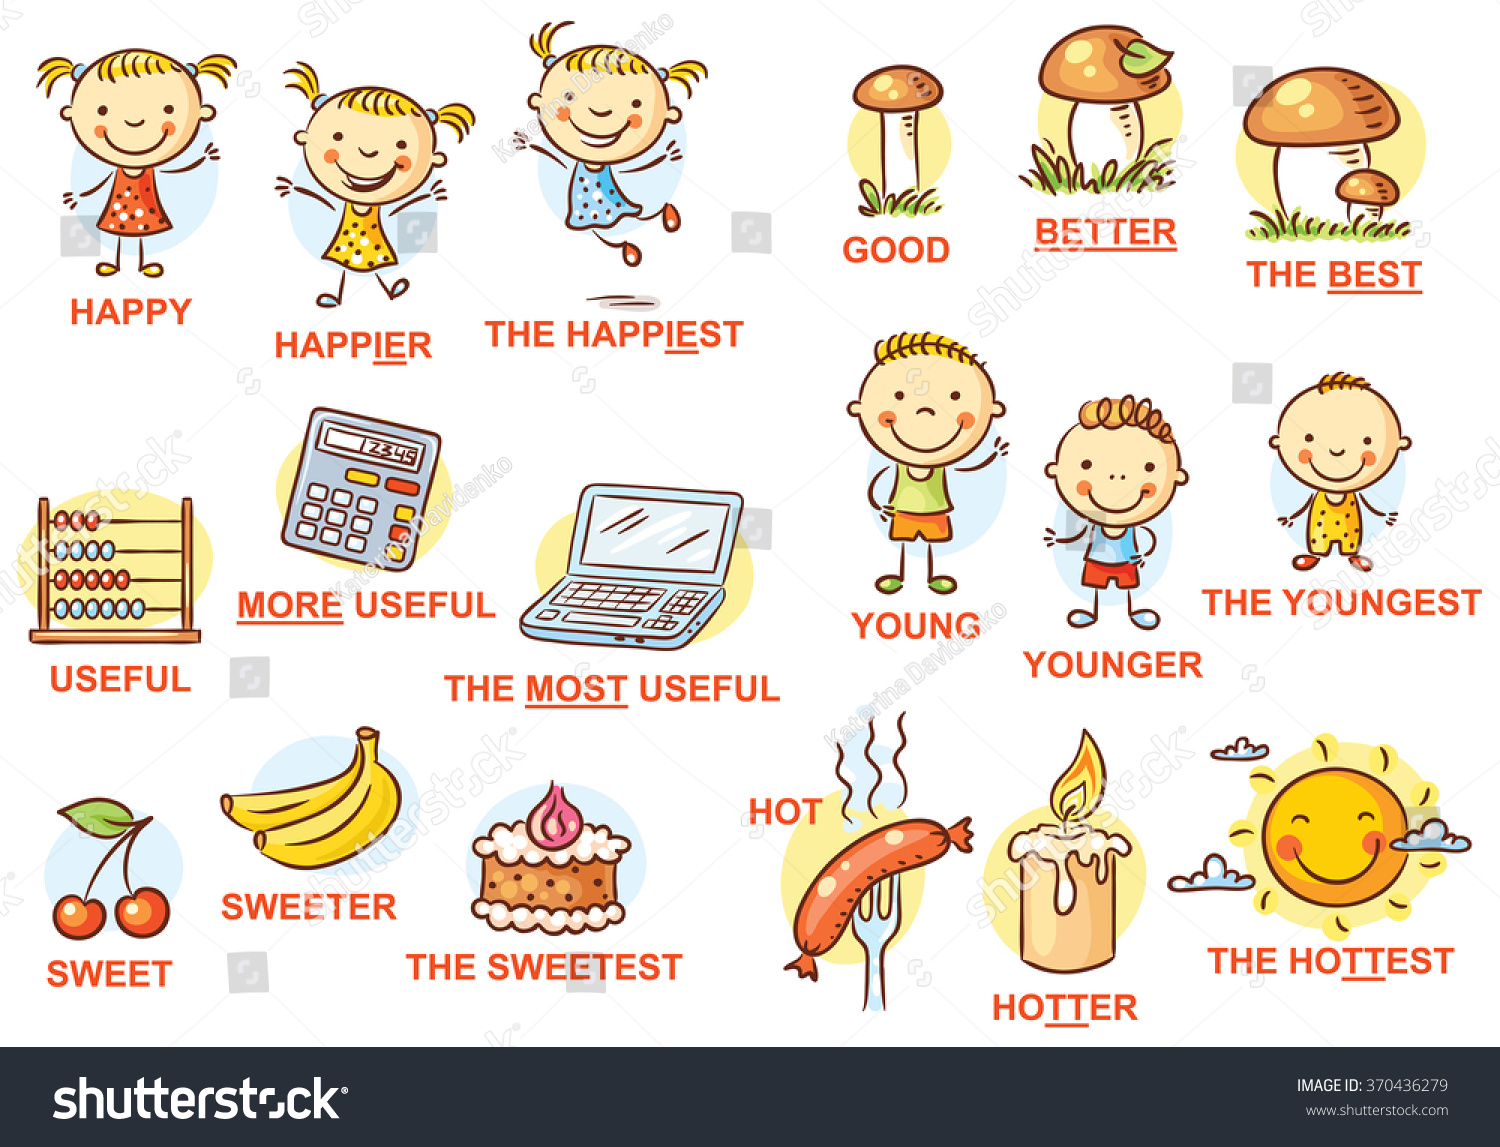 Degrees Of Comparison Of Adjectives In Pictures Colorful Cartoon Stock Vector